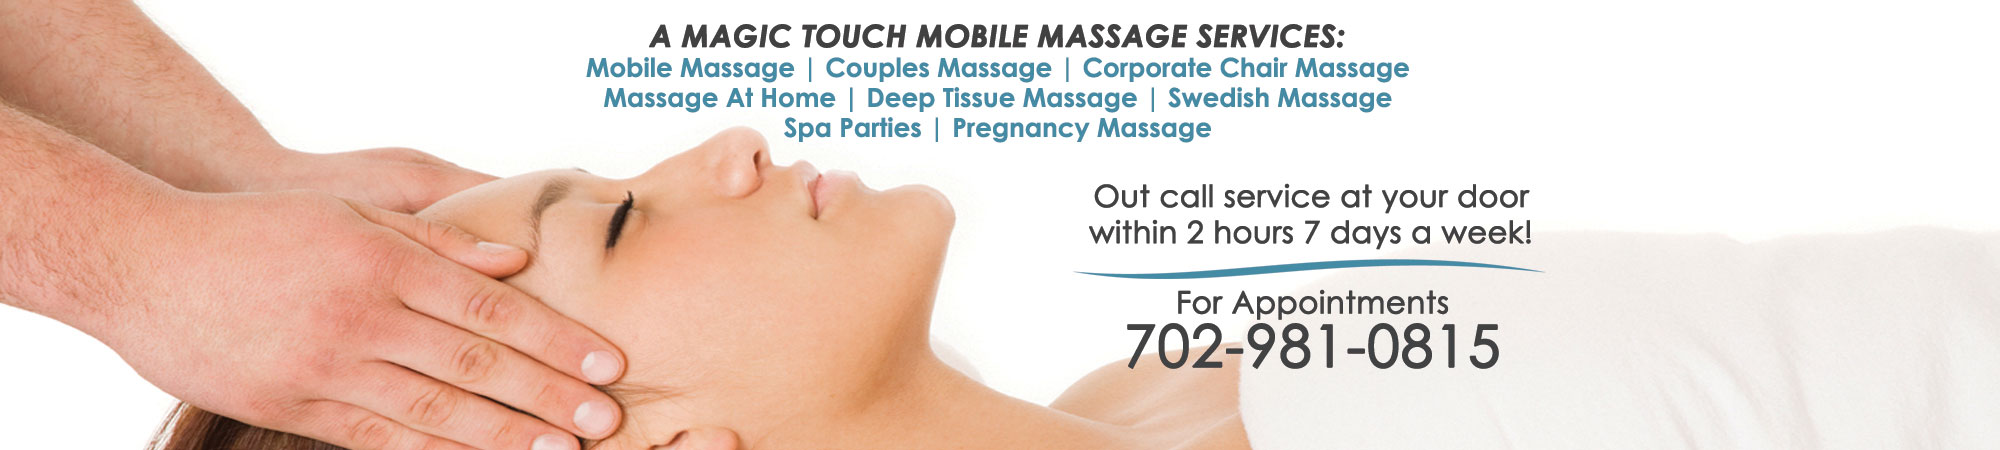 Mobile-Massage-Las-Vegas-Services